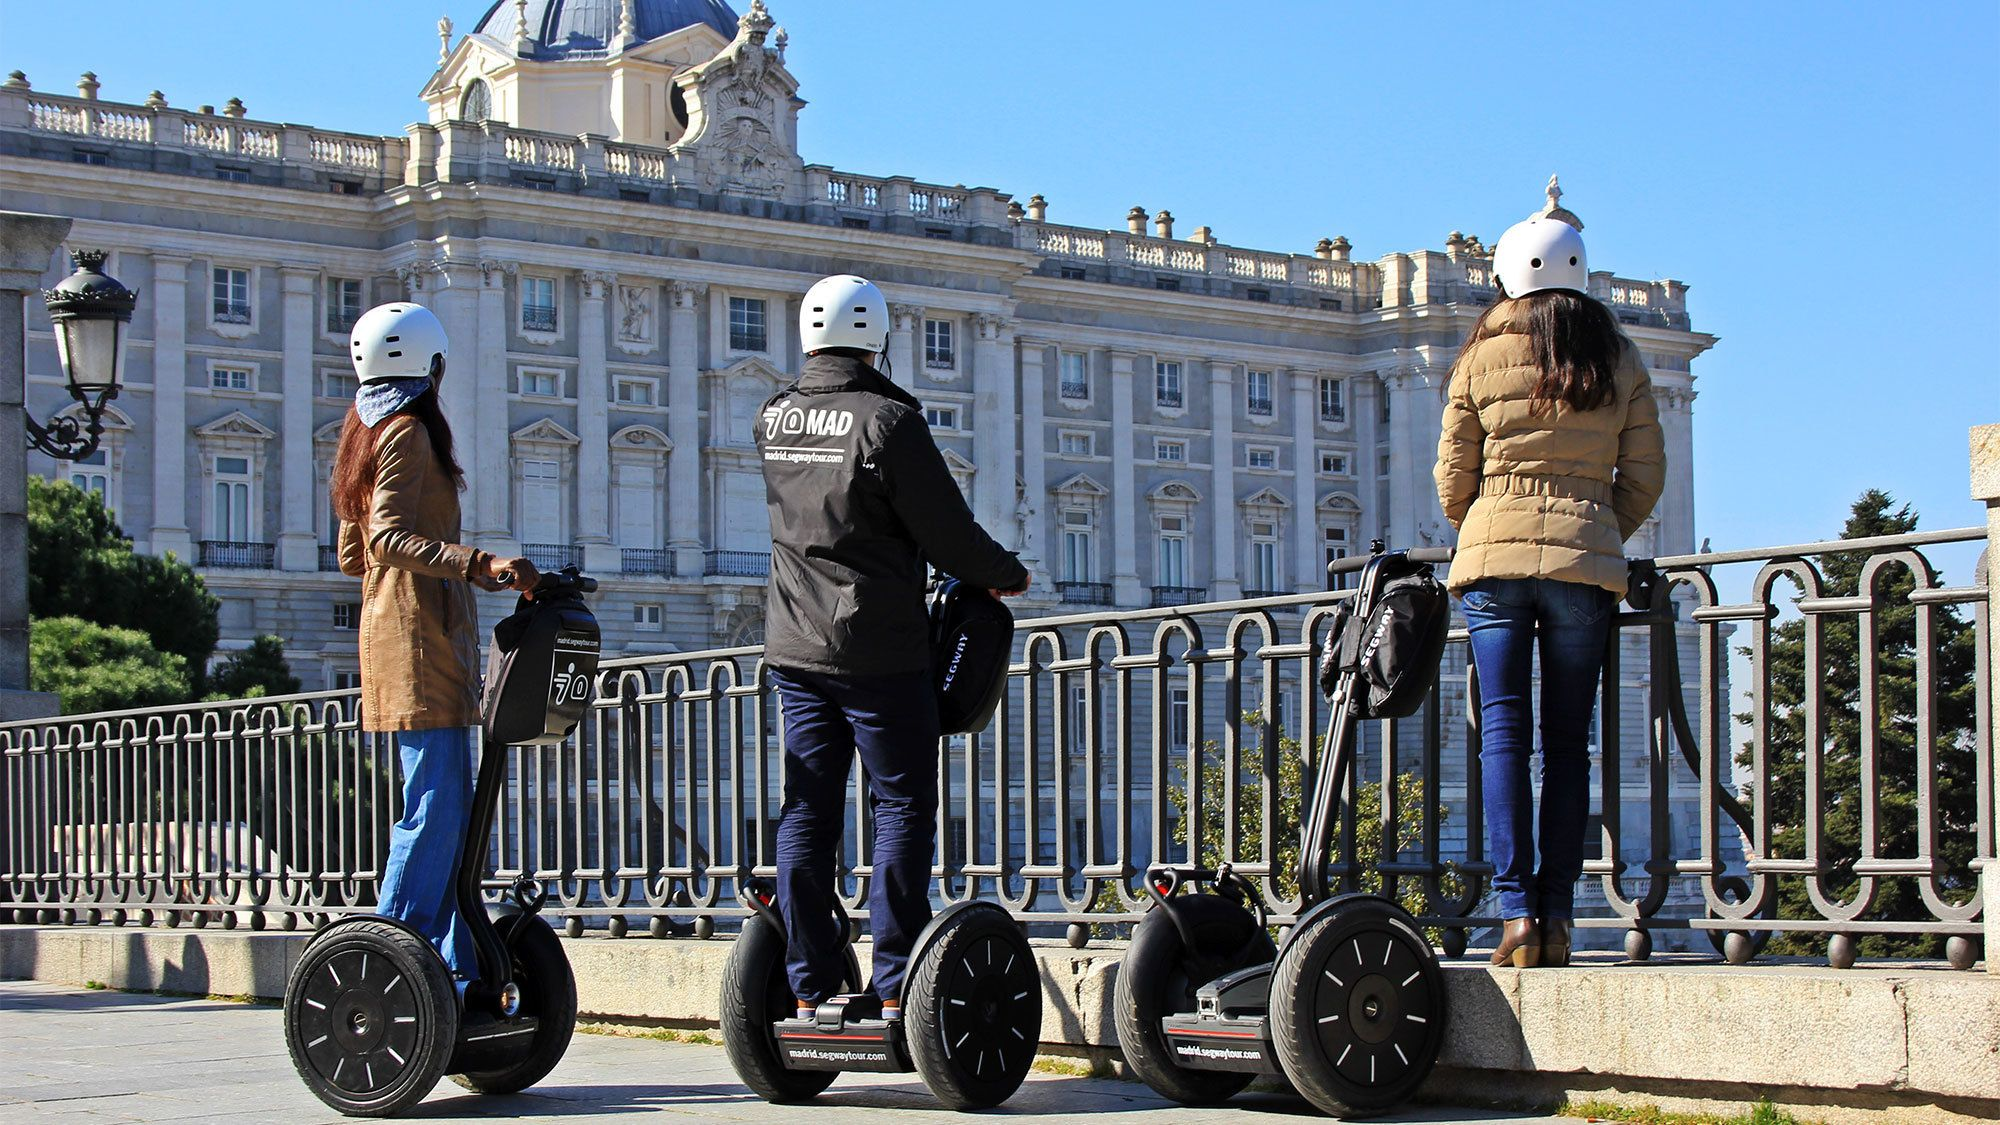 Group admiring a building on the segway tour of Barcelona